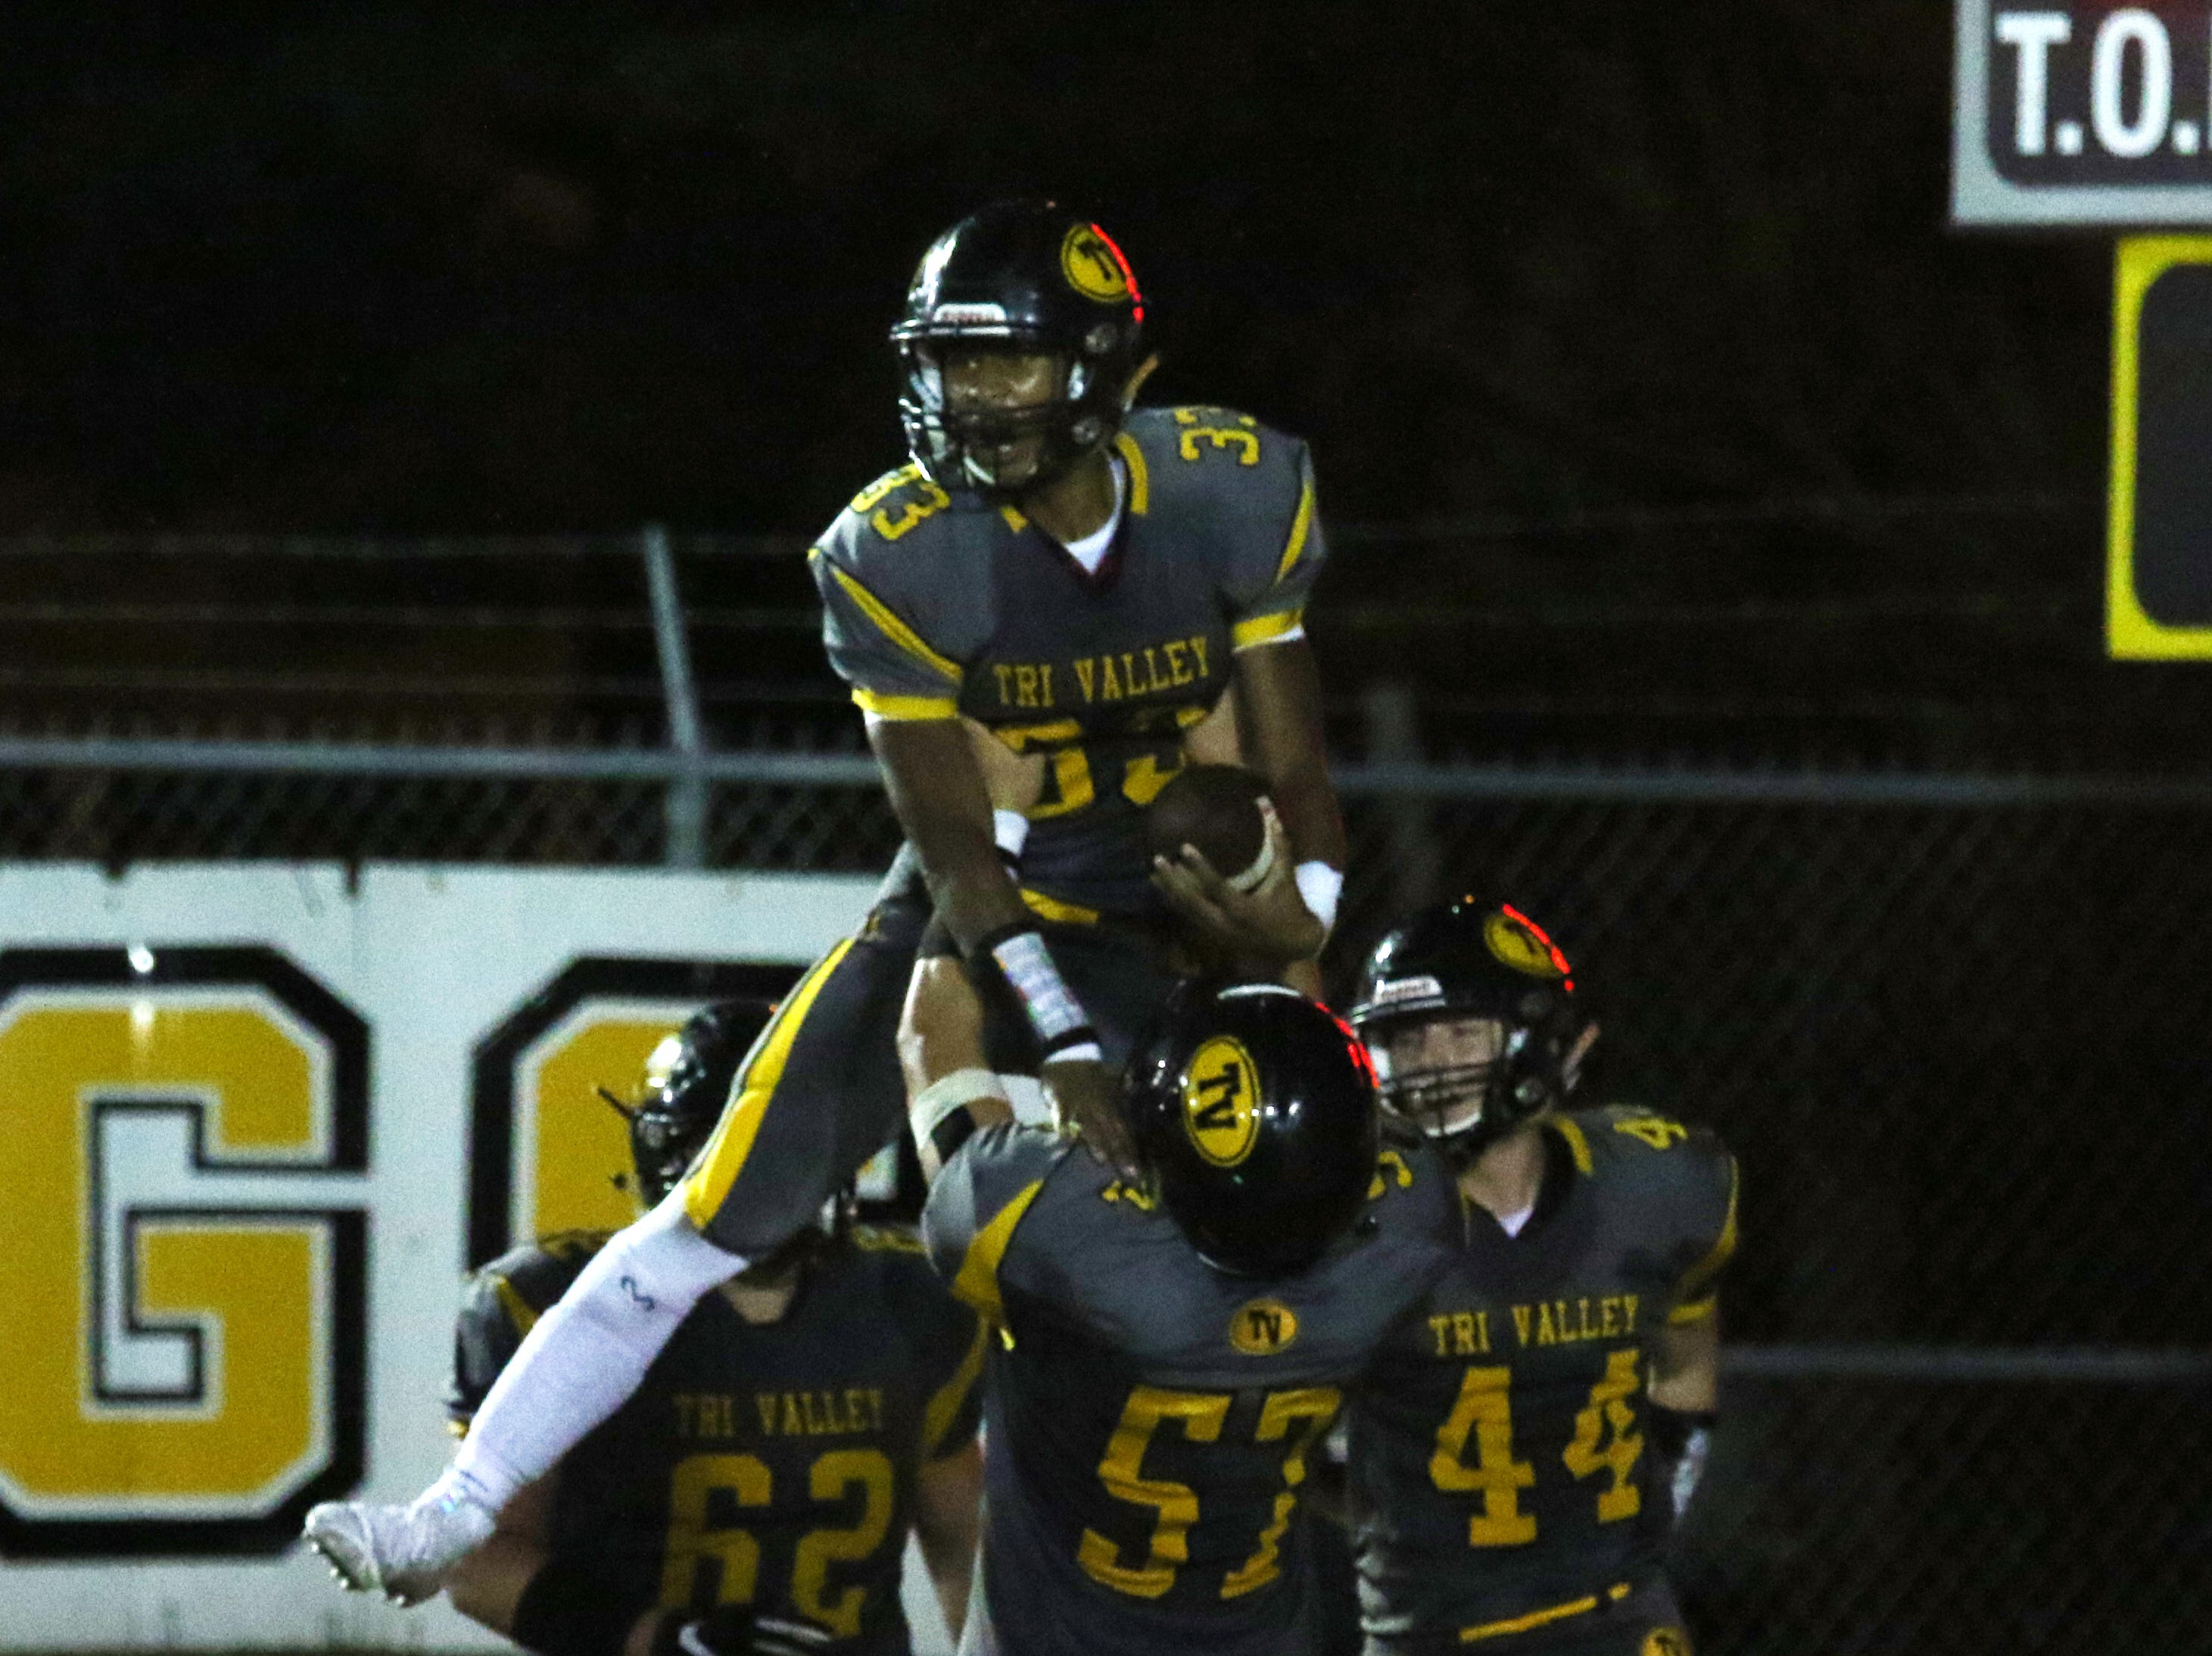 Tri-Valley celebrates a Jordan Pantaleo touchdown against Zanesville.